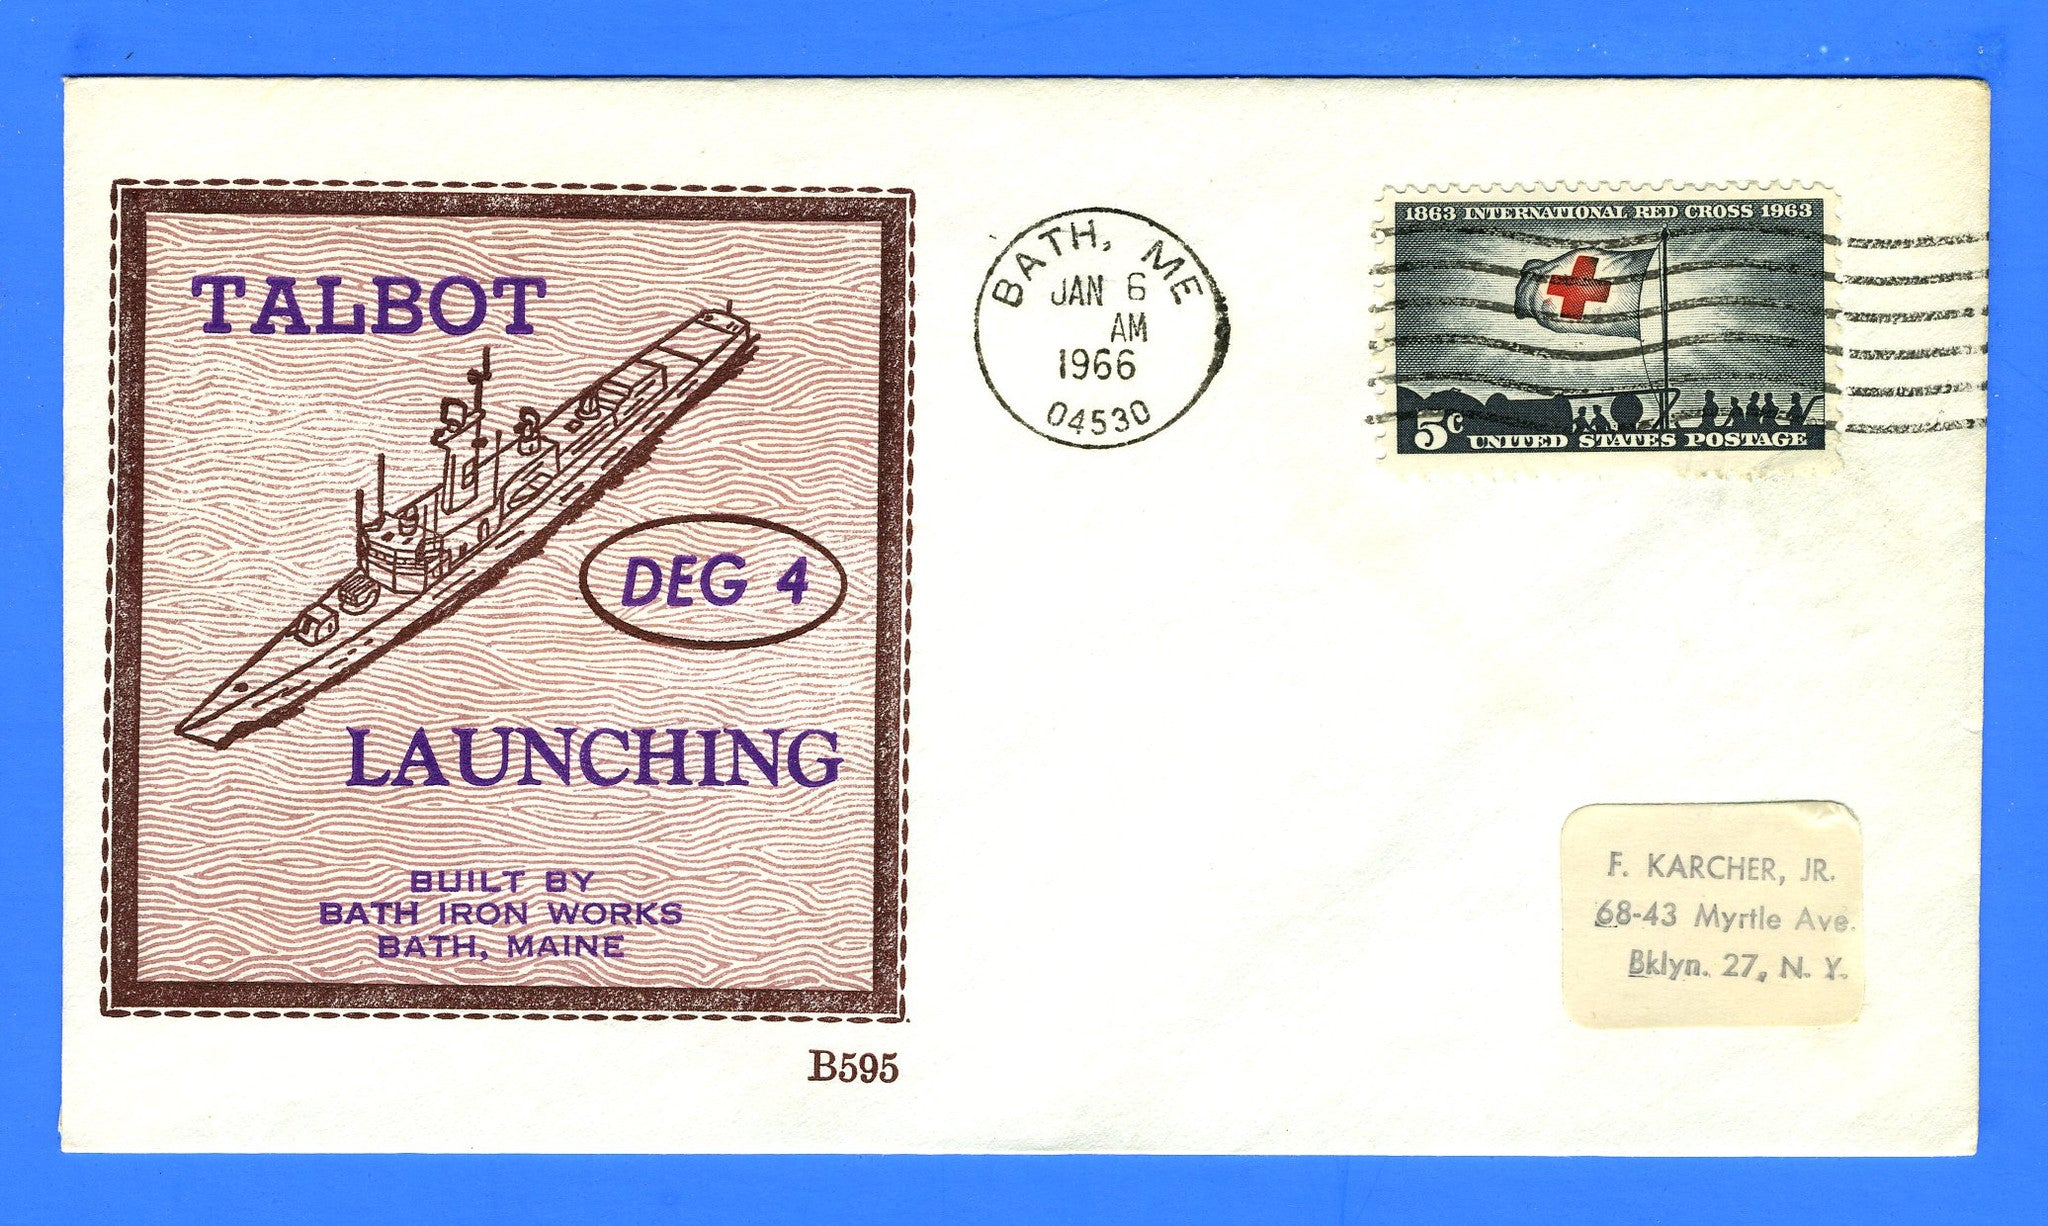 USS Talbot DEG-4 Launched January 6, 1966 - Beck B595